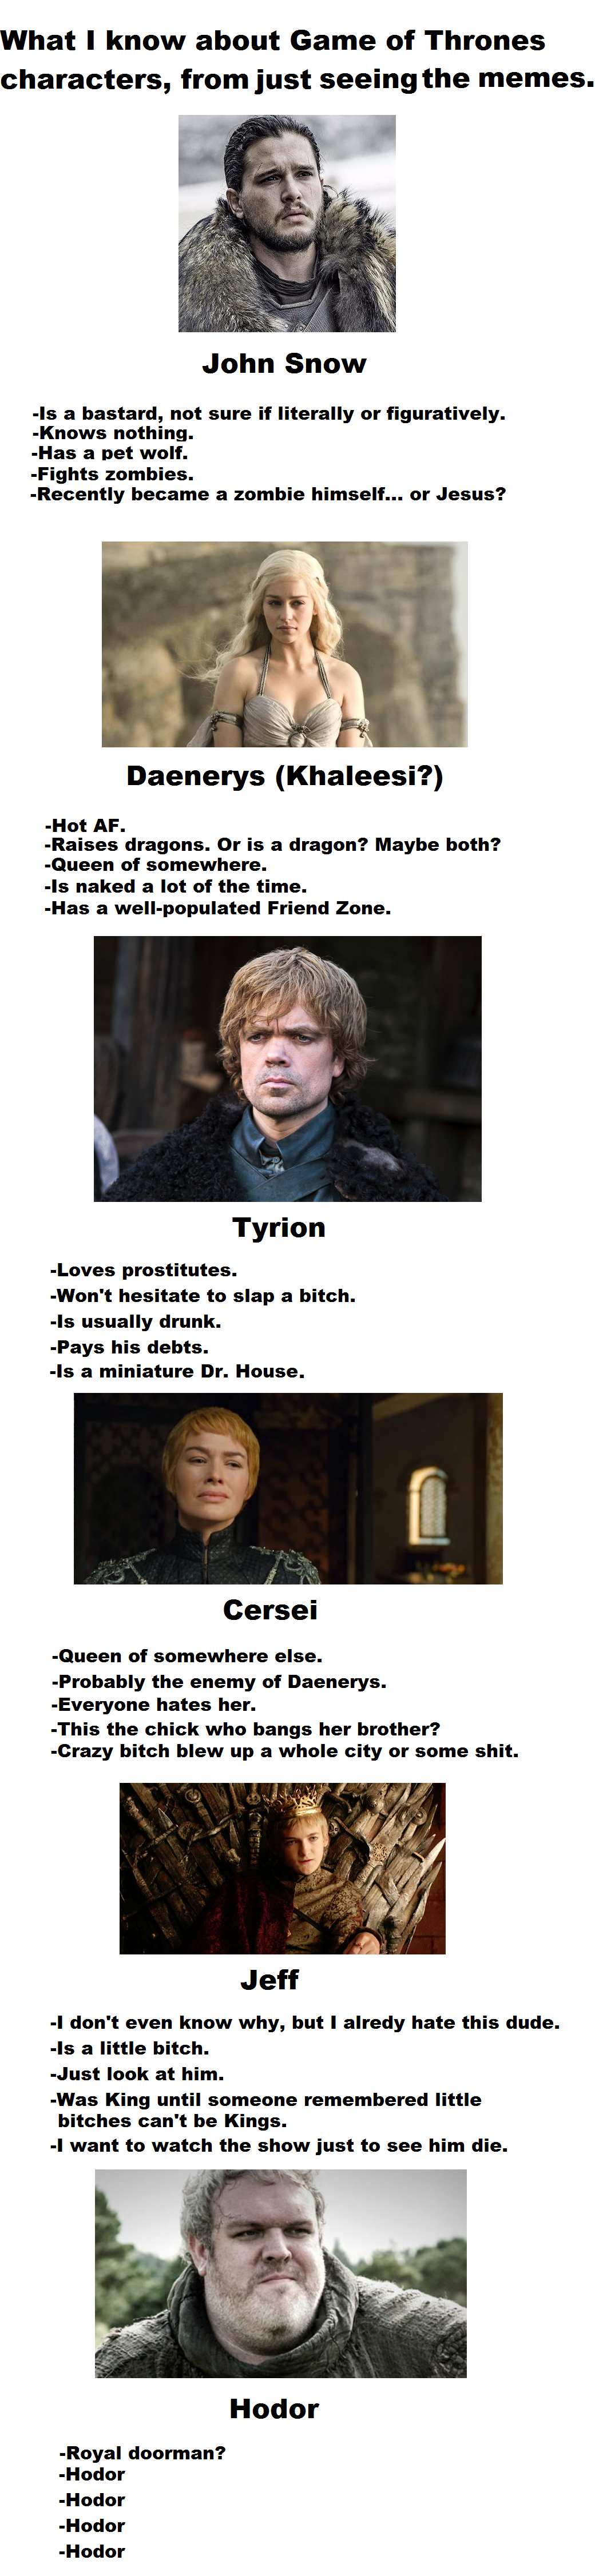 http://www.friendbookmark.com/images/GOT/game-of-thrones-funny-memes-33.png